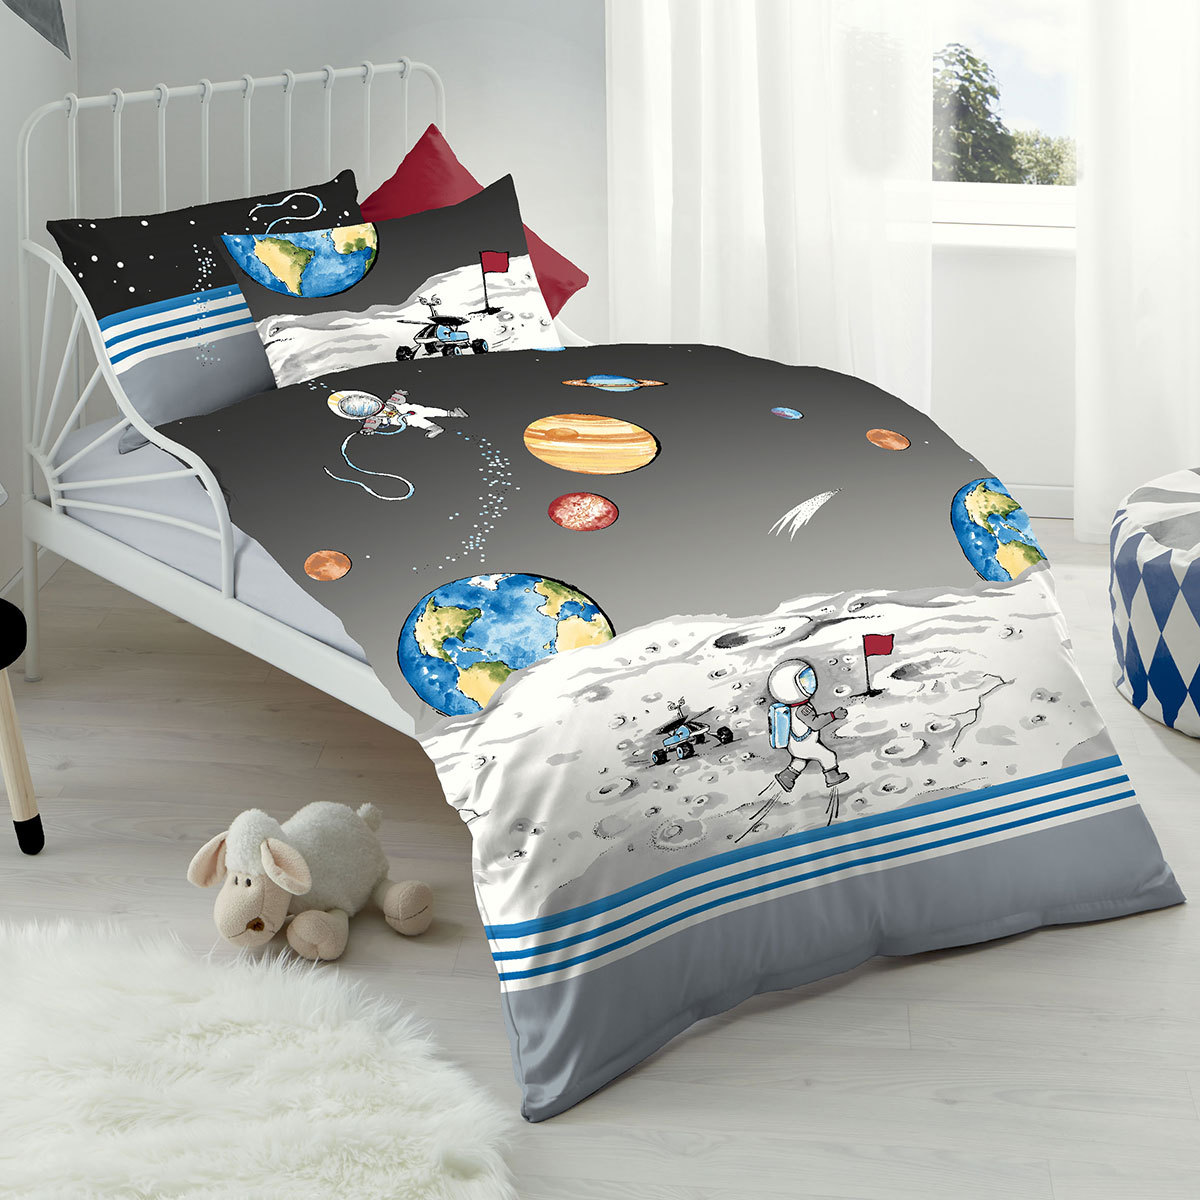 kaeppel biber kinderbettw sche astronaut g nstig online kaufen bei bettwaren shop. Black Bedroom Furniture Sets. Home Design Ideas